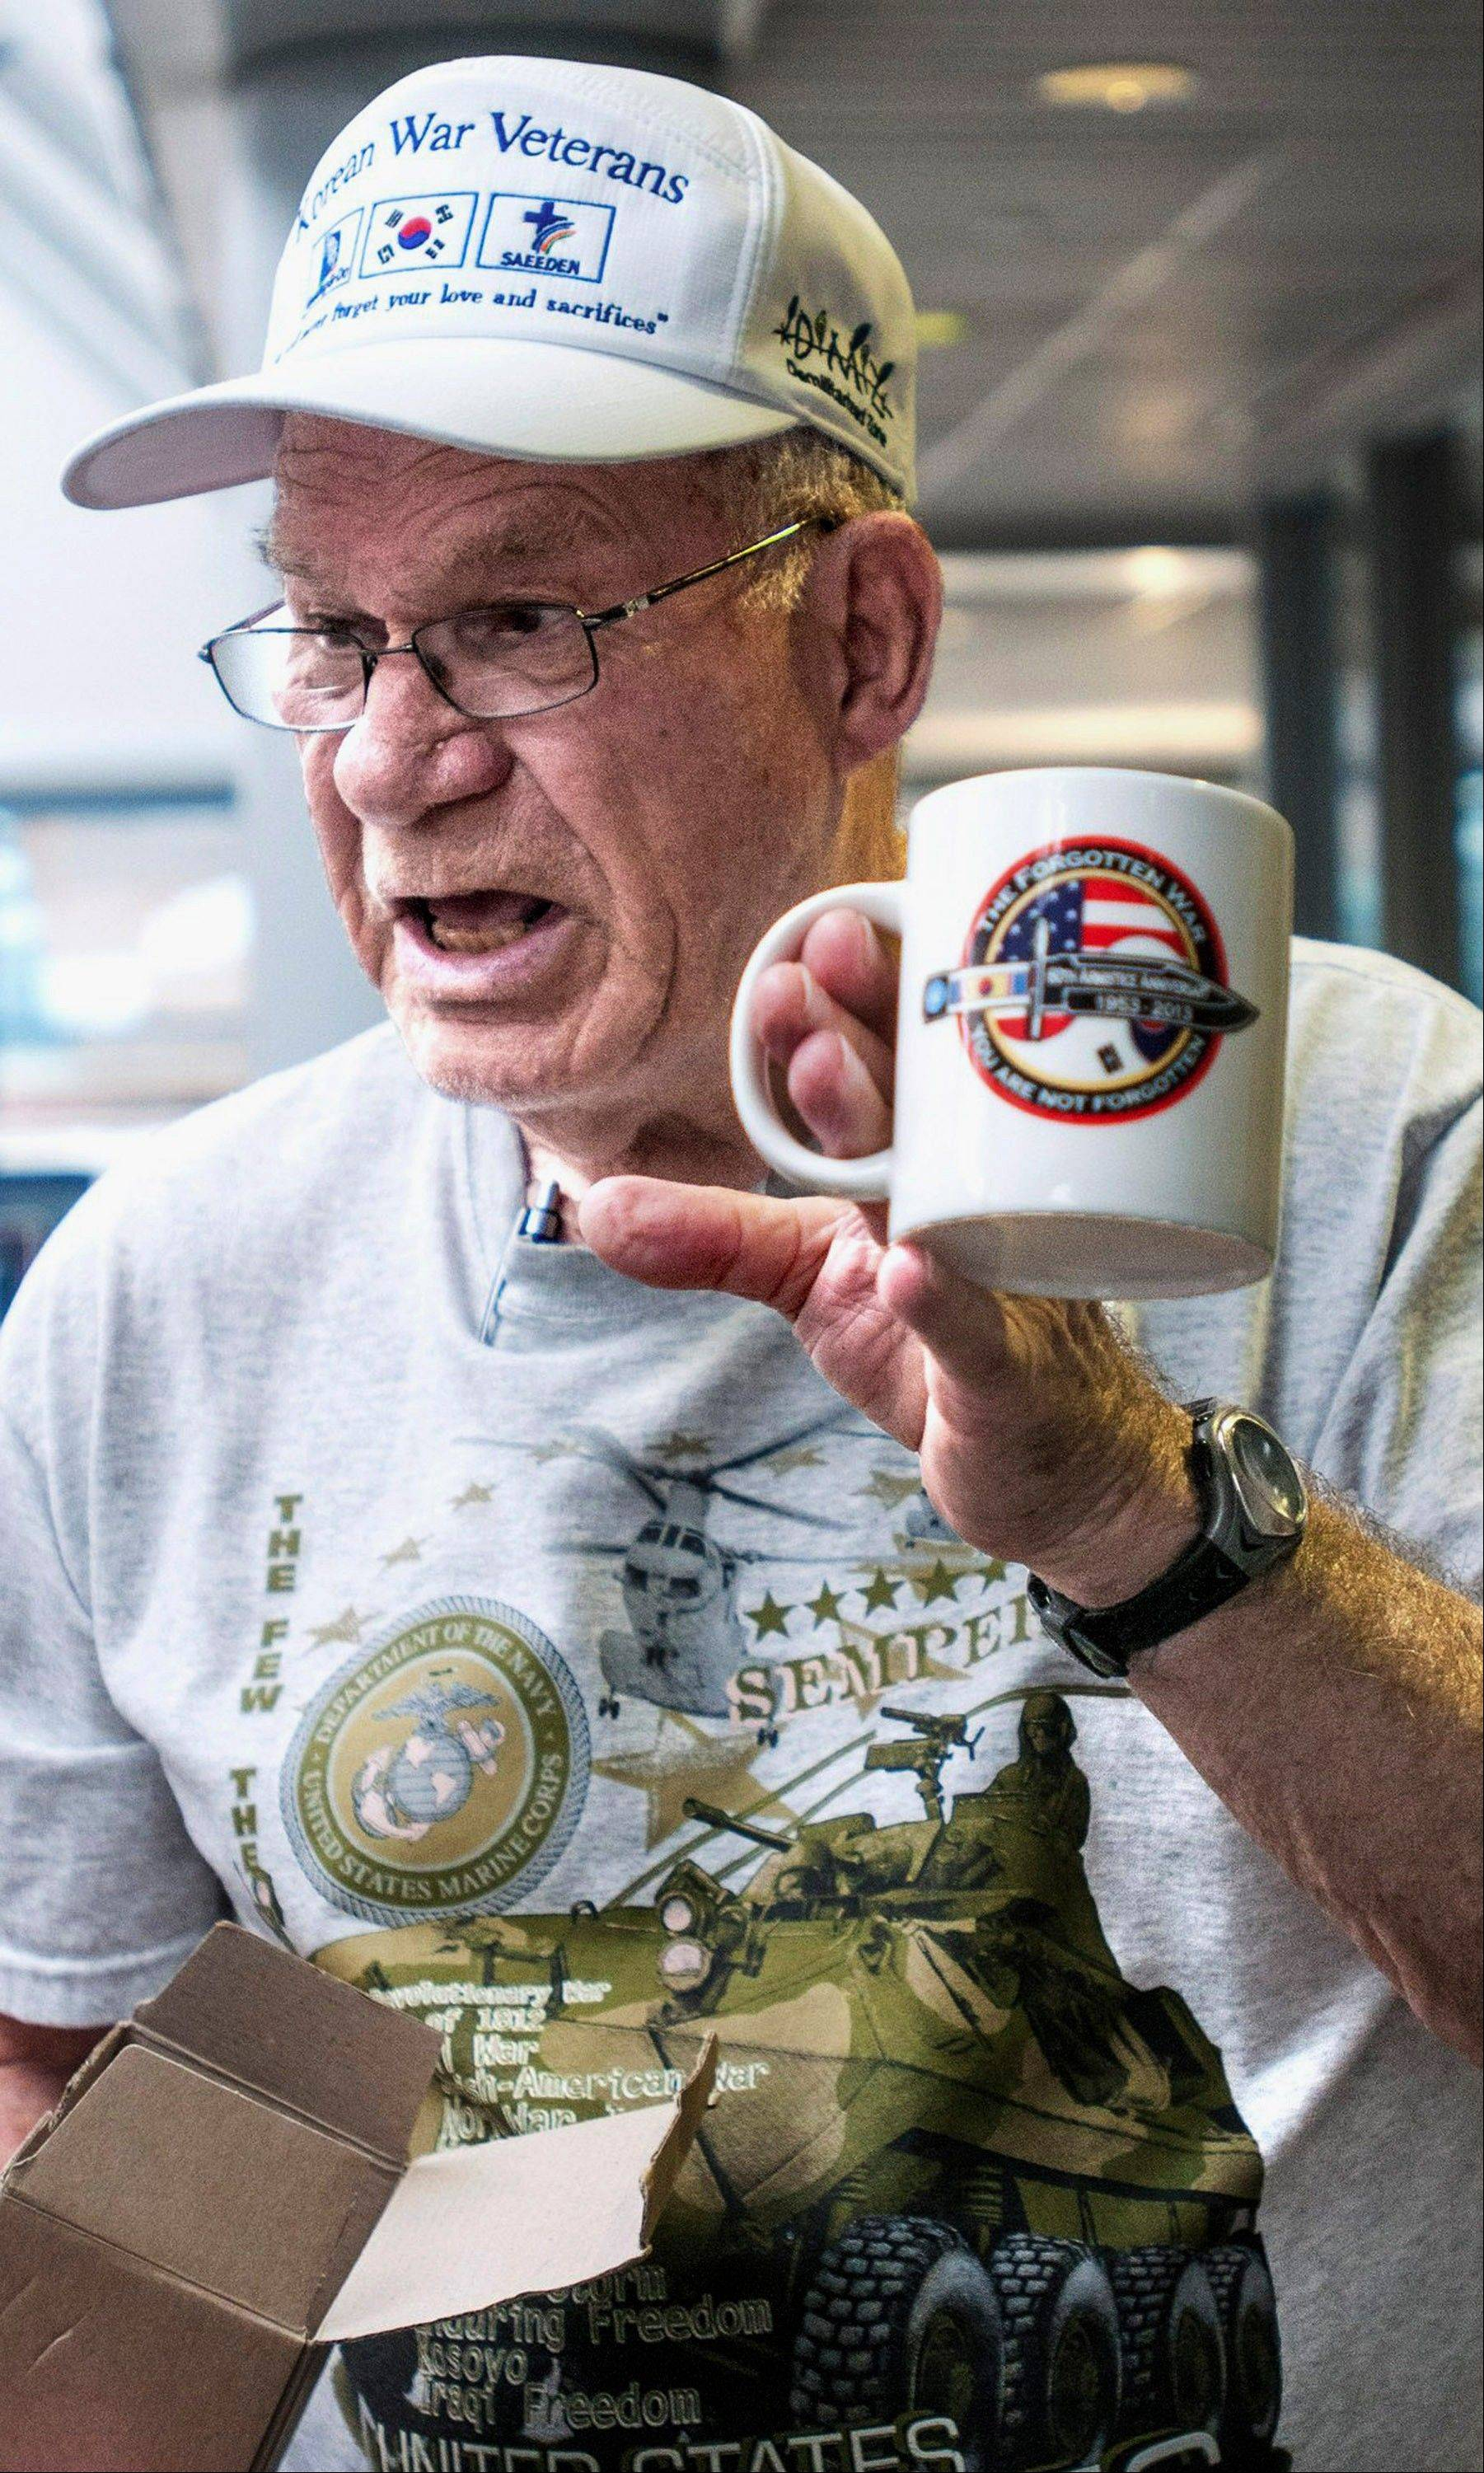 Marine veteran Sam McPheeters, 82, of Monticello, shows a mug that he received along with many other gifts on a five-day trip to South Korea to commemorate the 60th anniversary of the end of the Korean War after his arrival back to Willard Airport in Savoy.